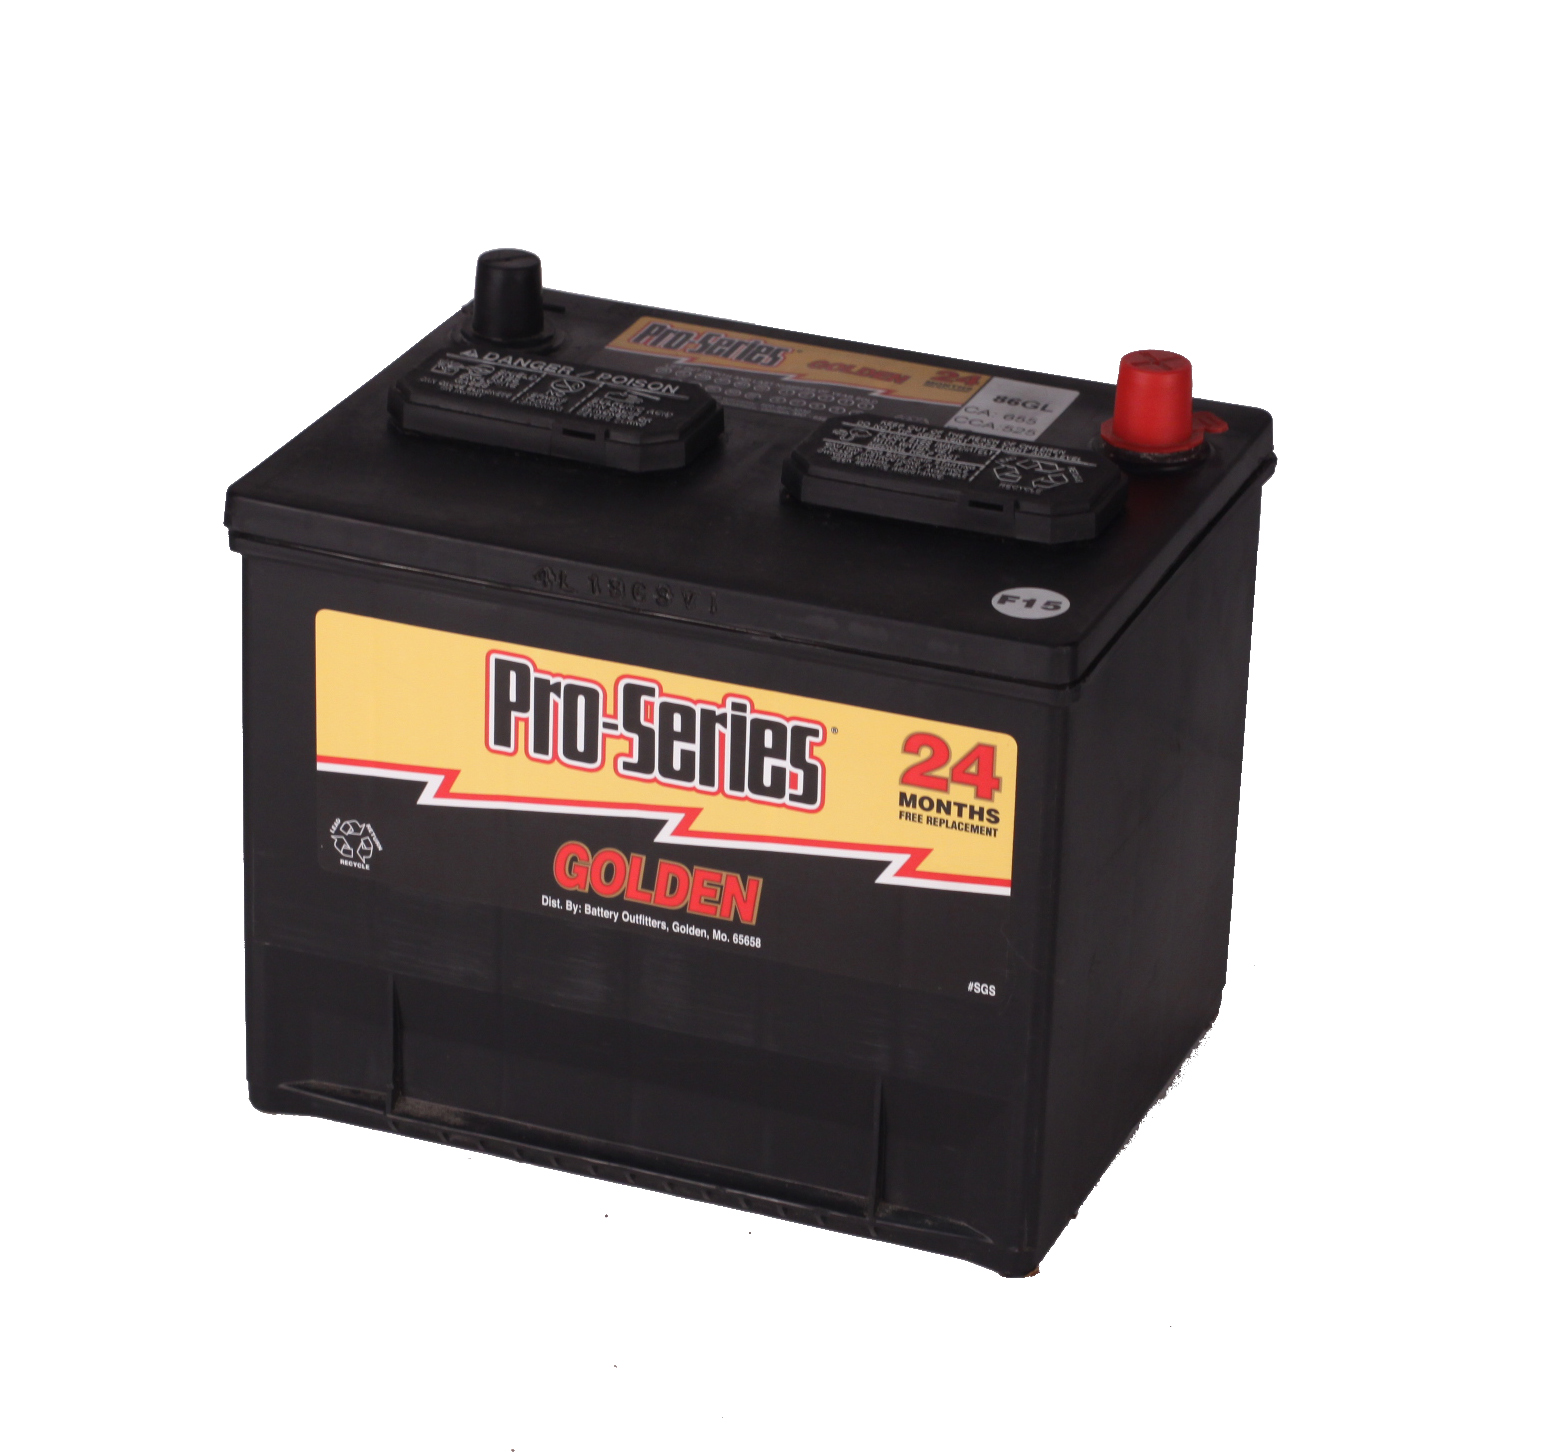 GRP 86 PRO-SERIES  BATTERY